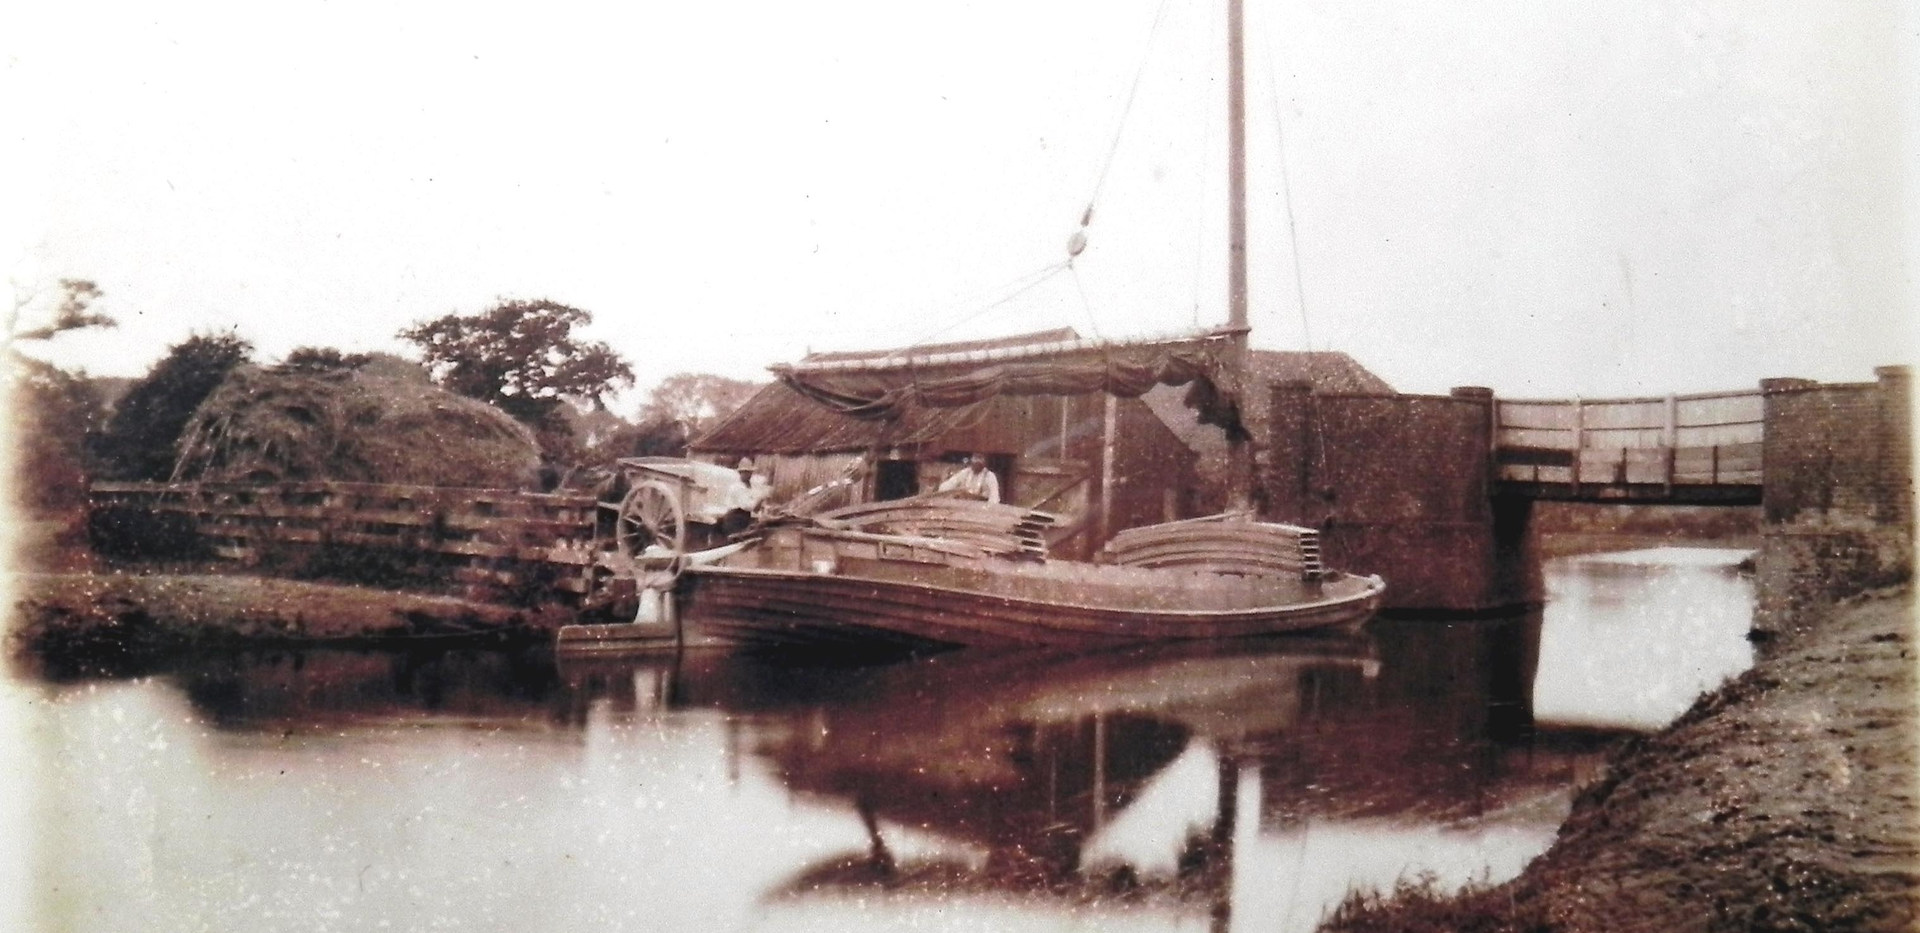 A Wherry at Burgh Road Bridge Staithe